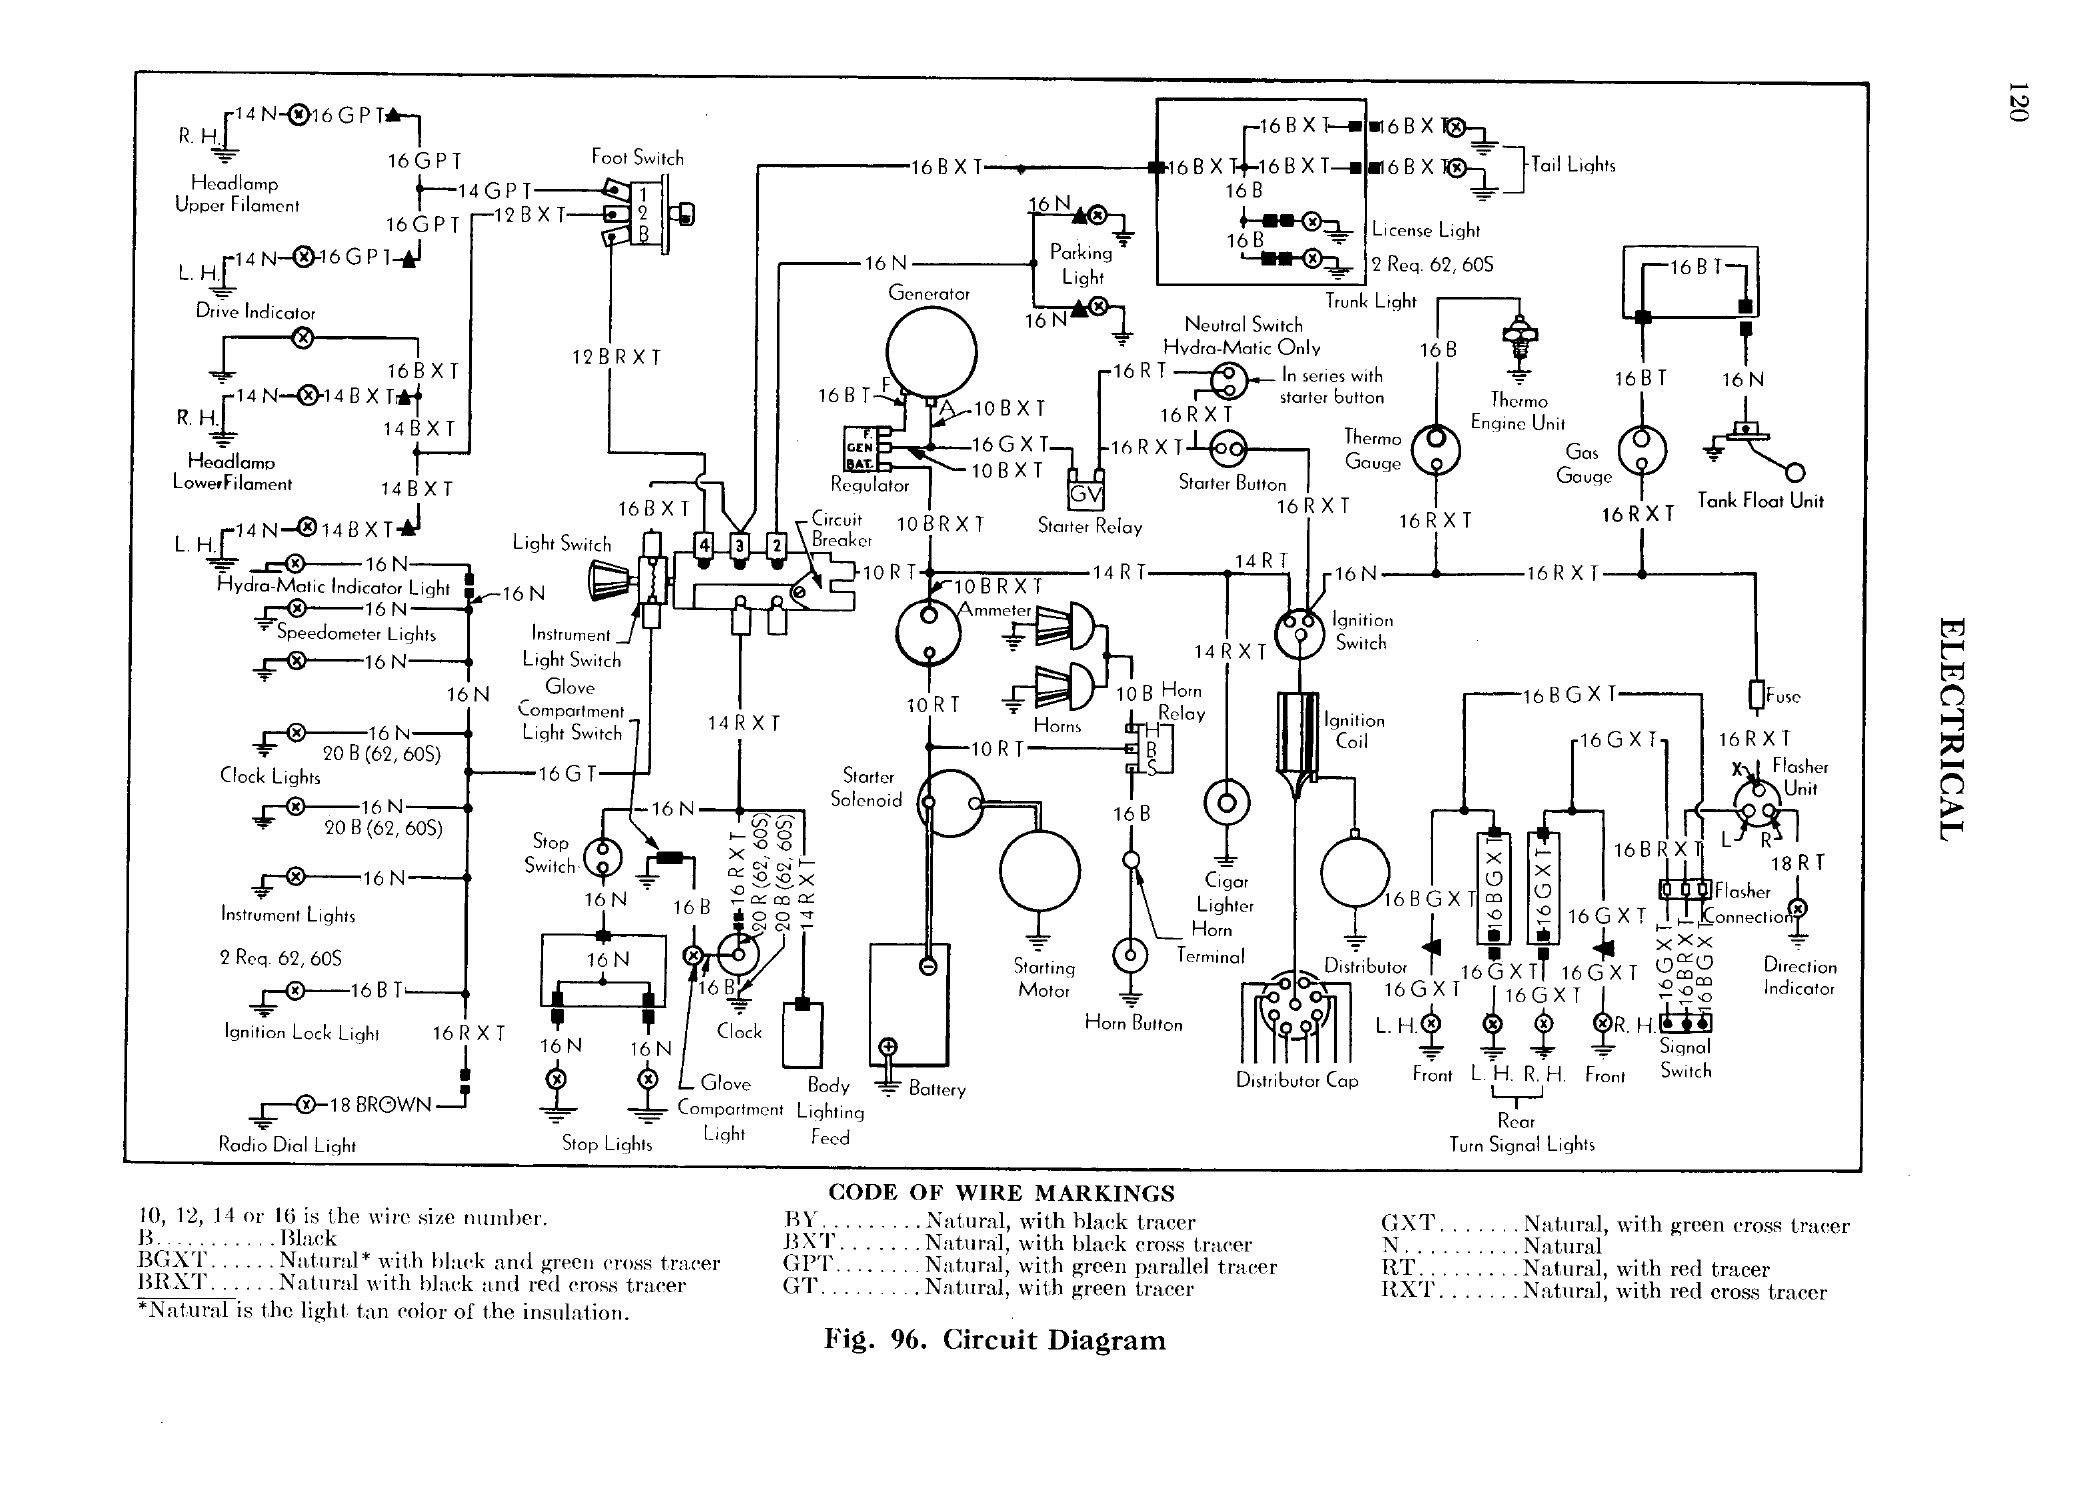 1947 Cadillac Shop Manual-Electrical Page 1 of 17